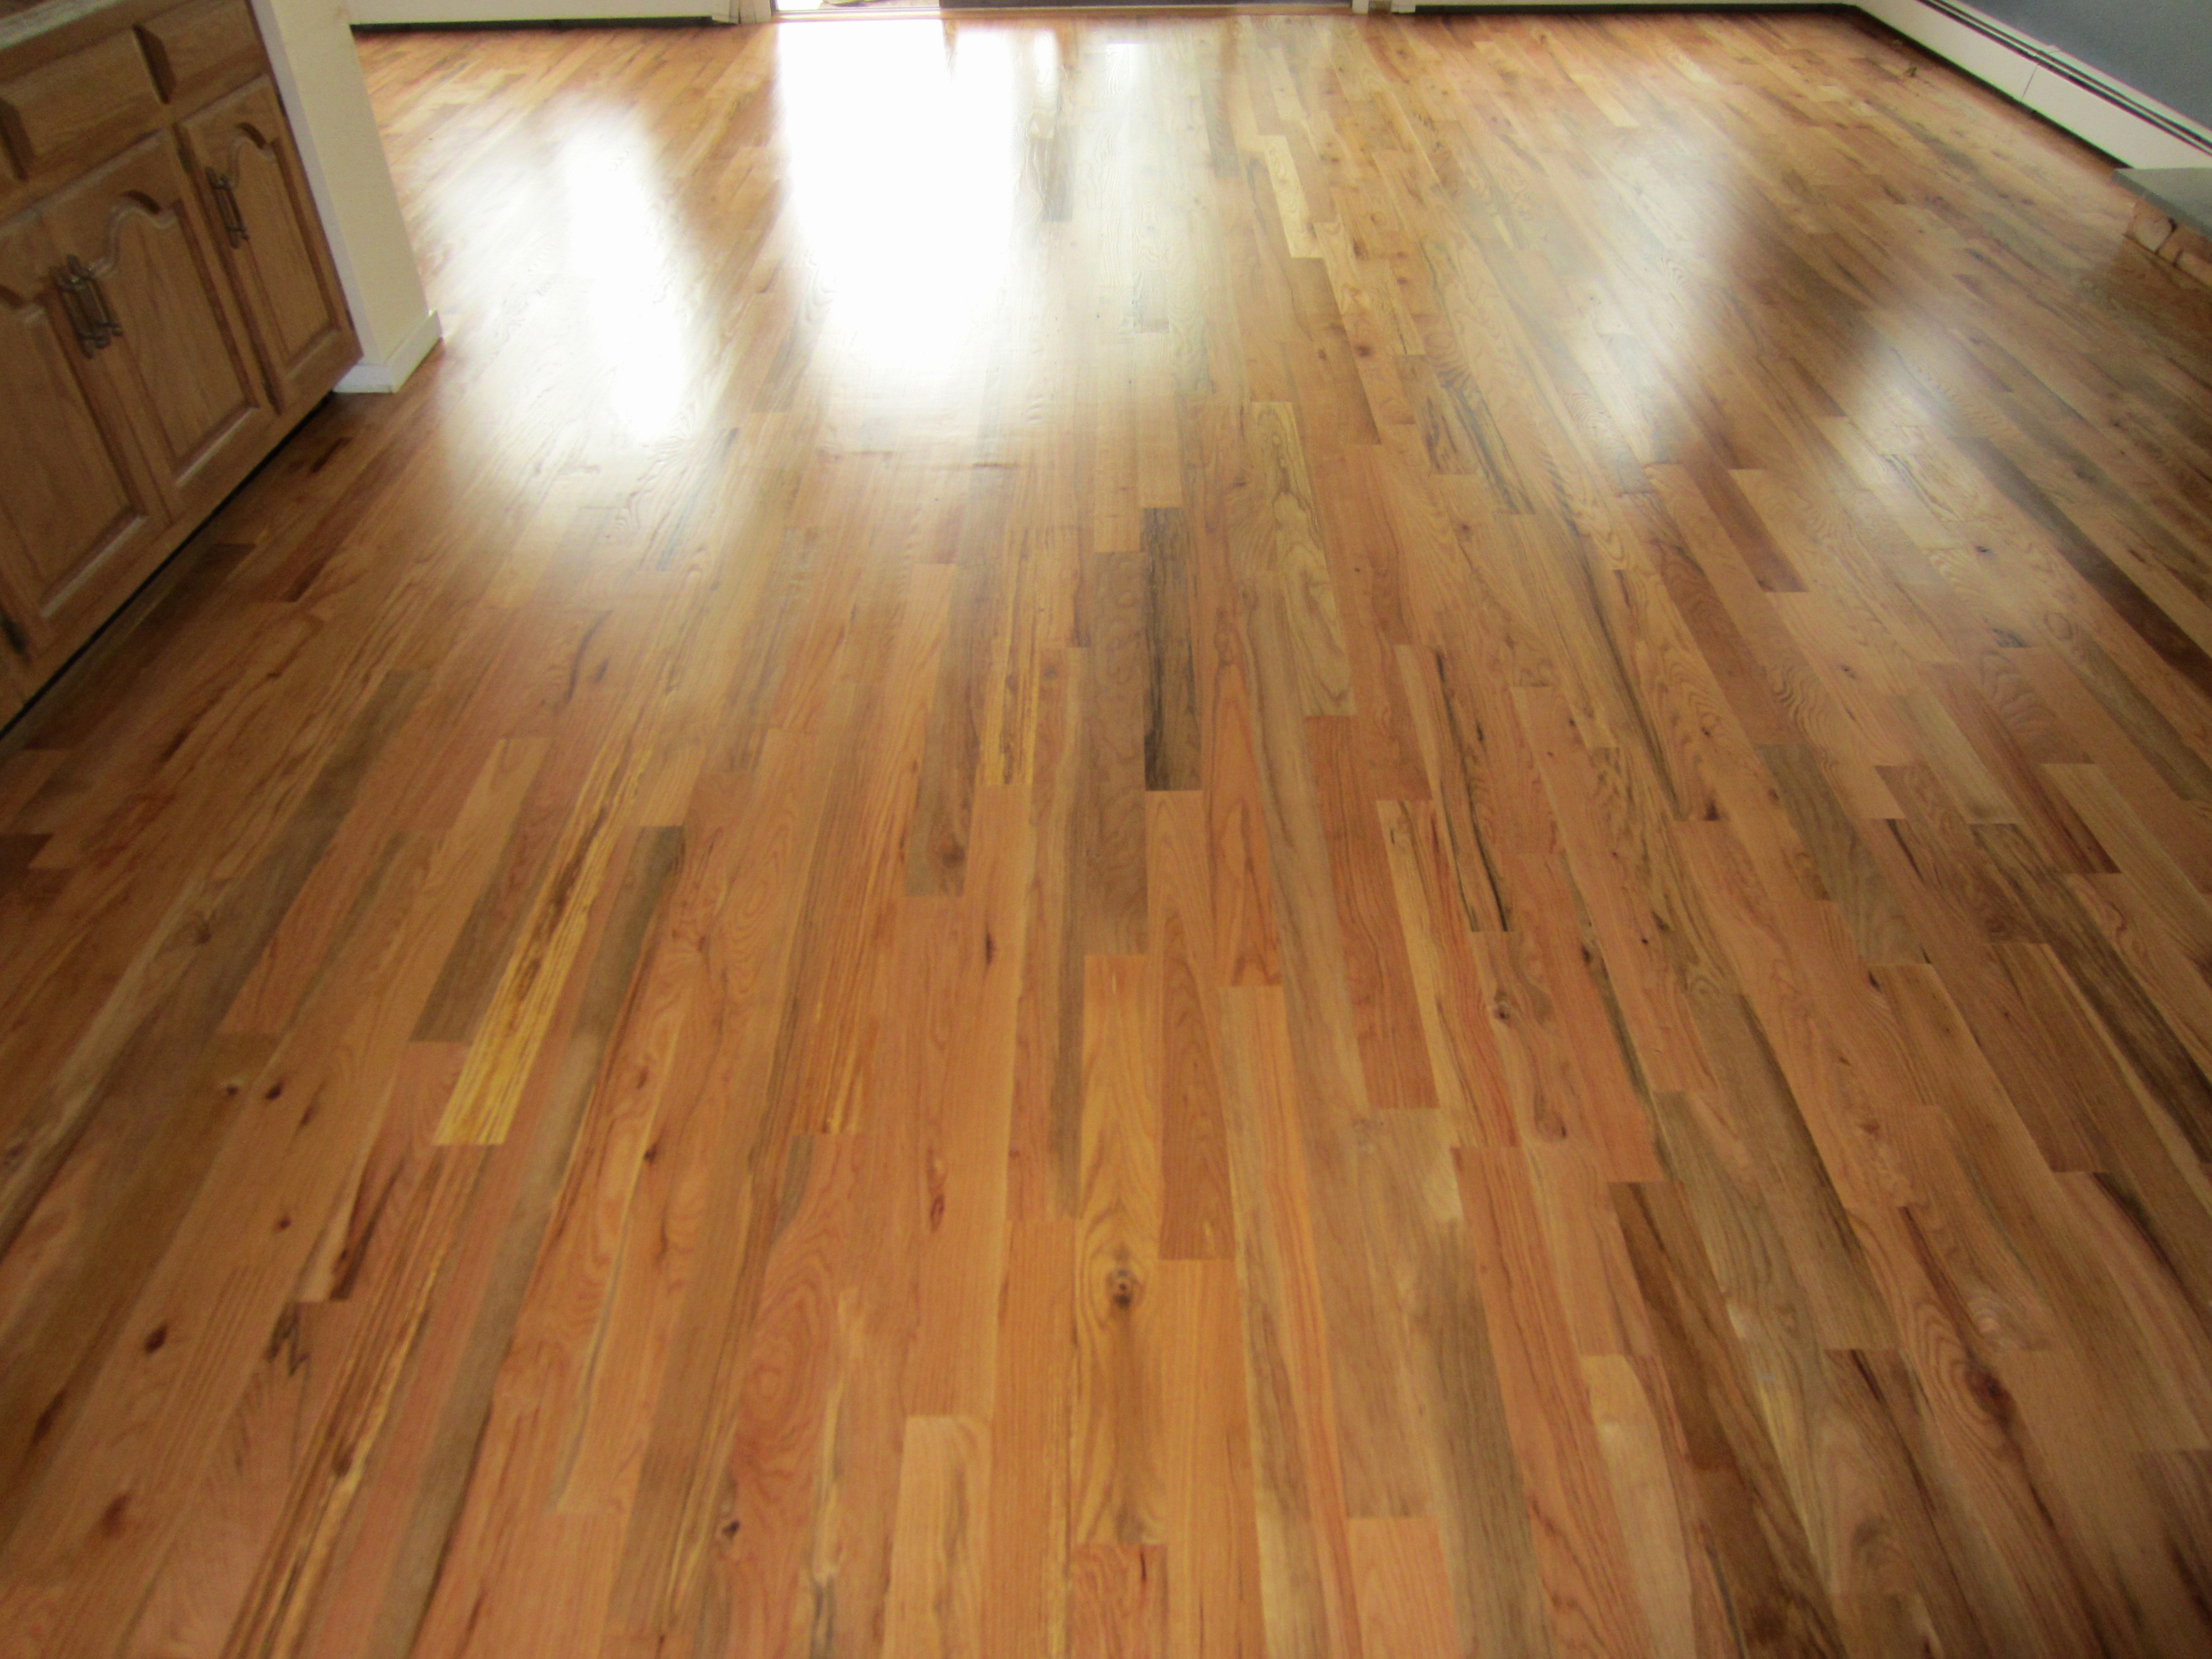 average cost to install laminate hardwood floors of lowes laminate flooring installation cost beautiful laminate for 37 luxury photograph of lowes laminate flooring installation cost lowes laminate flooring installation cost unique how